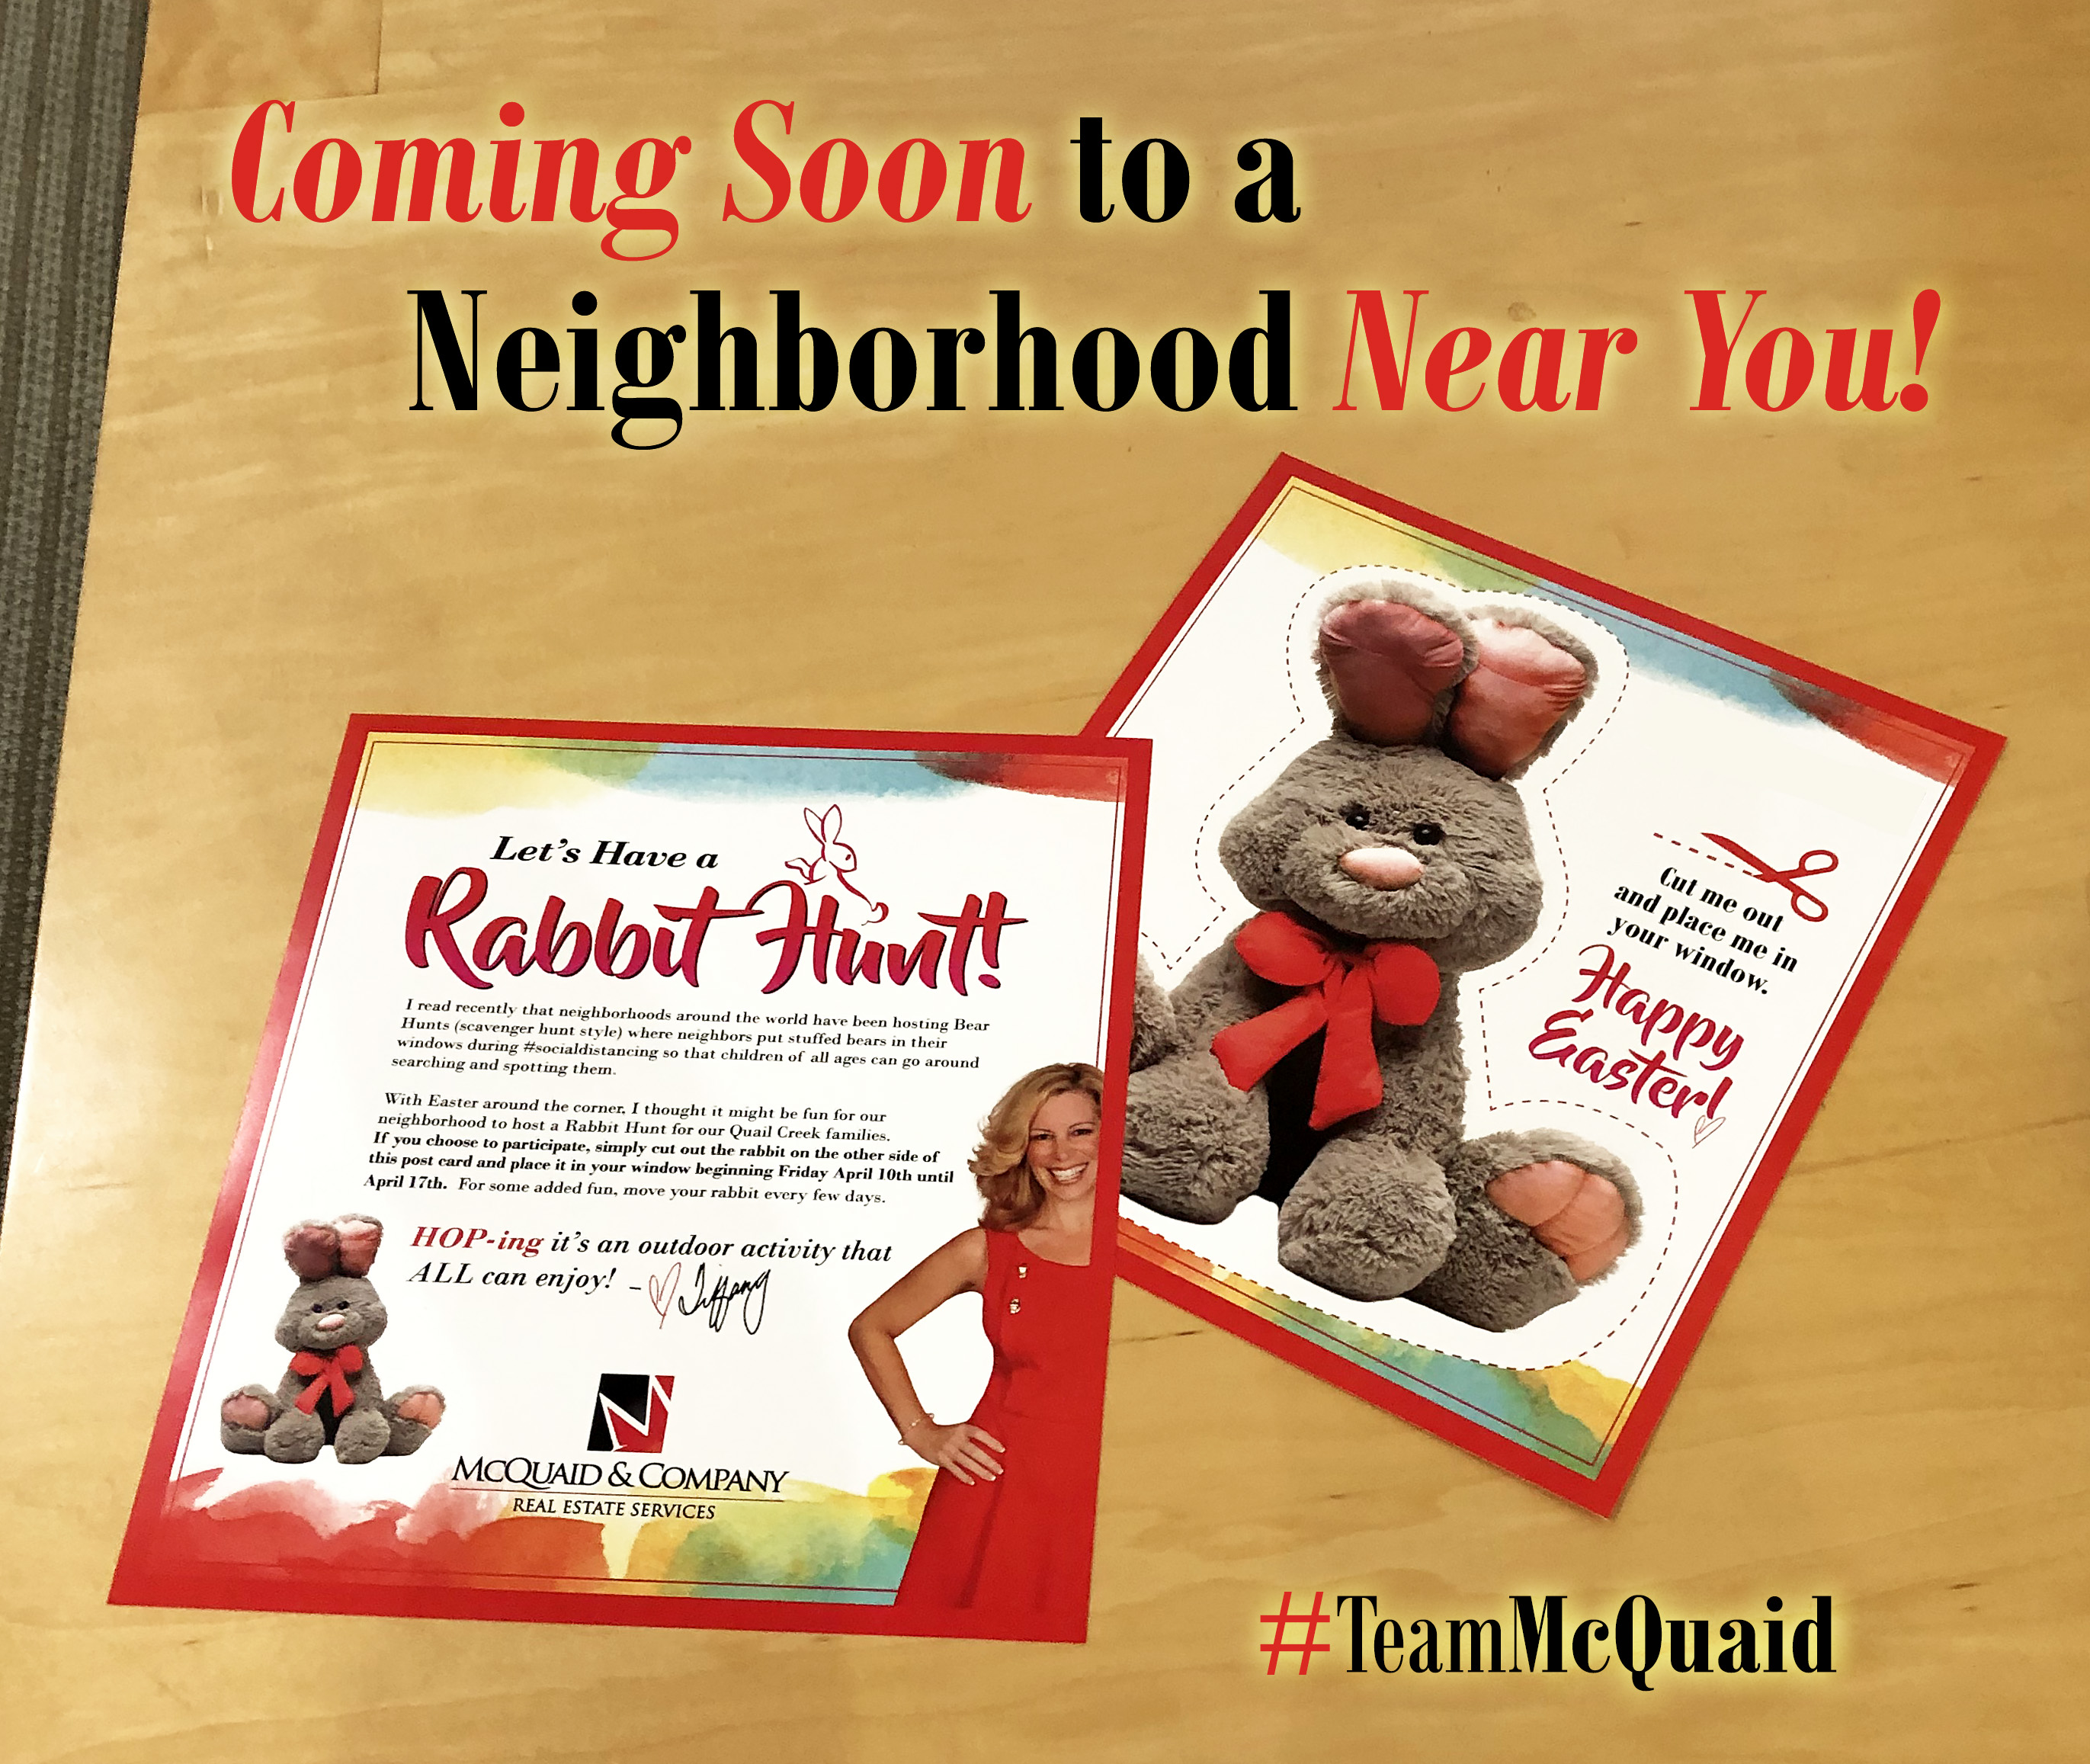 Coming Soon to a Neighborhood Near You!